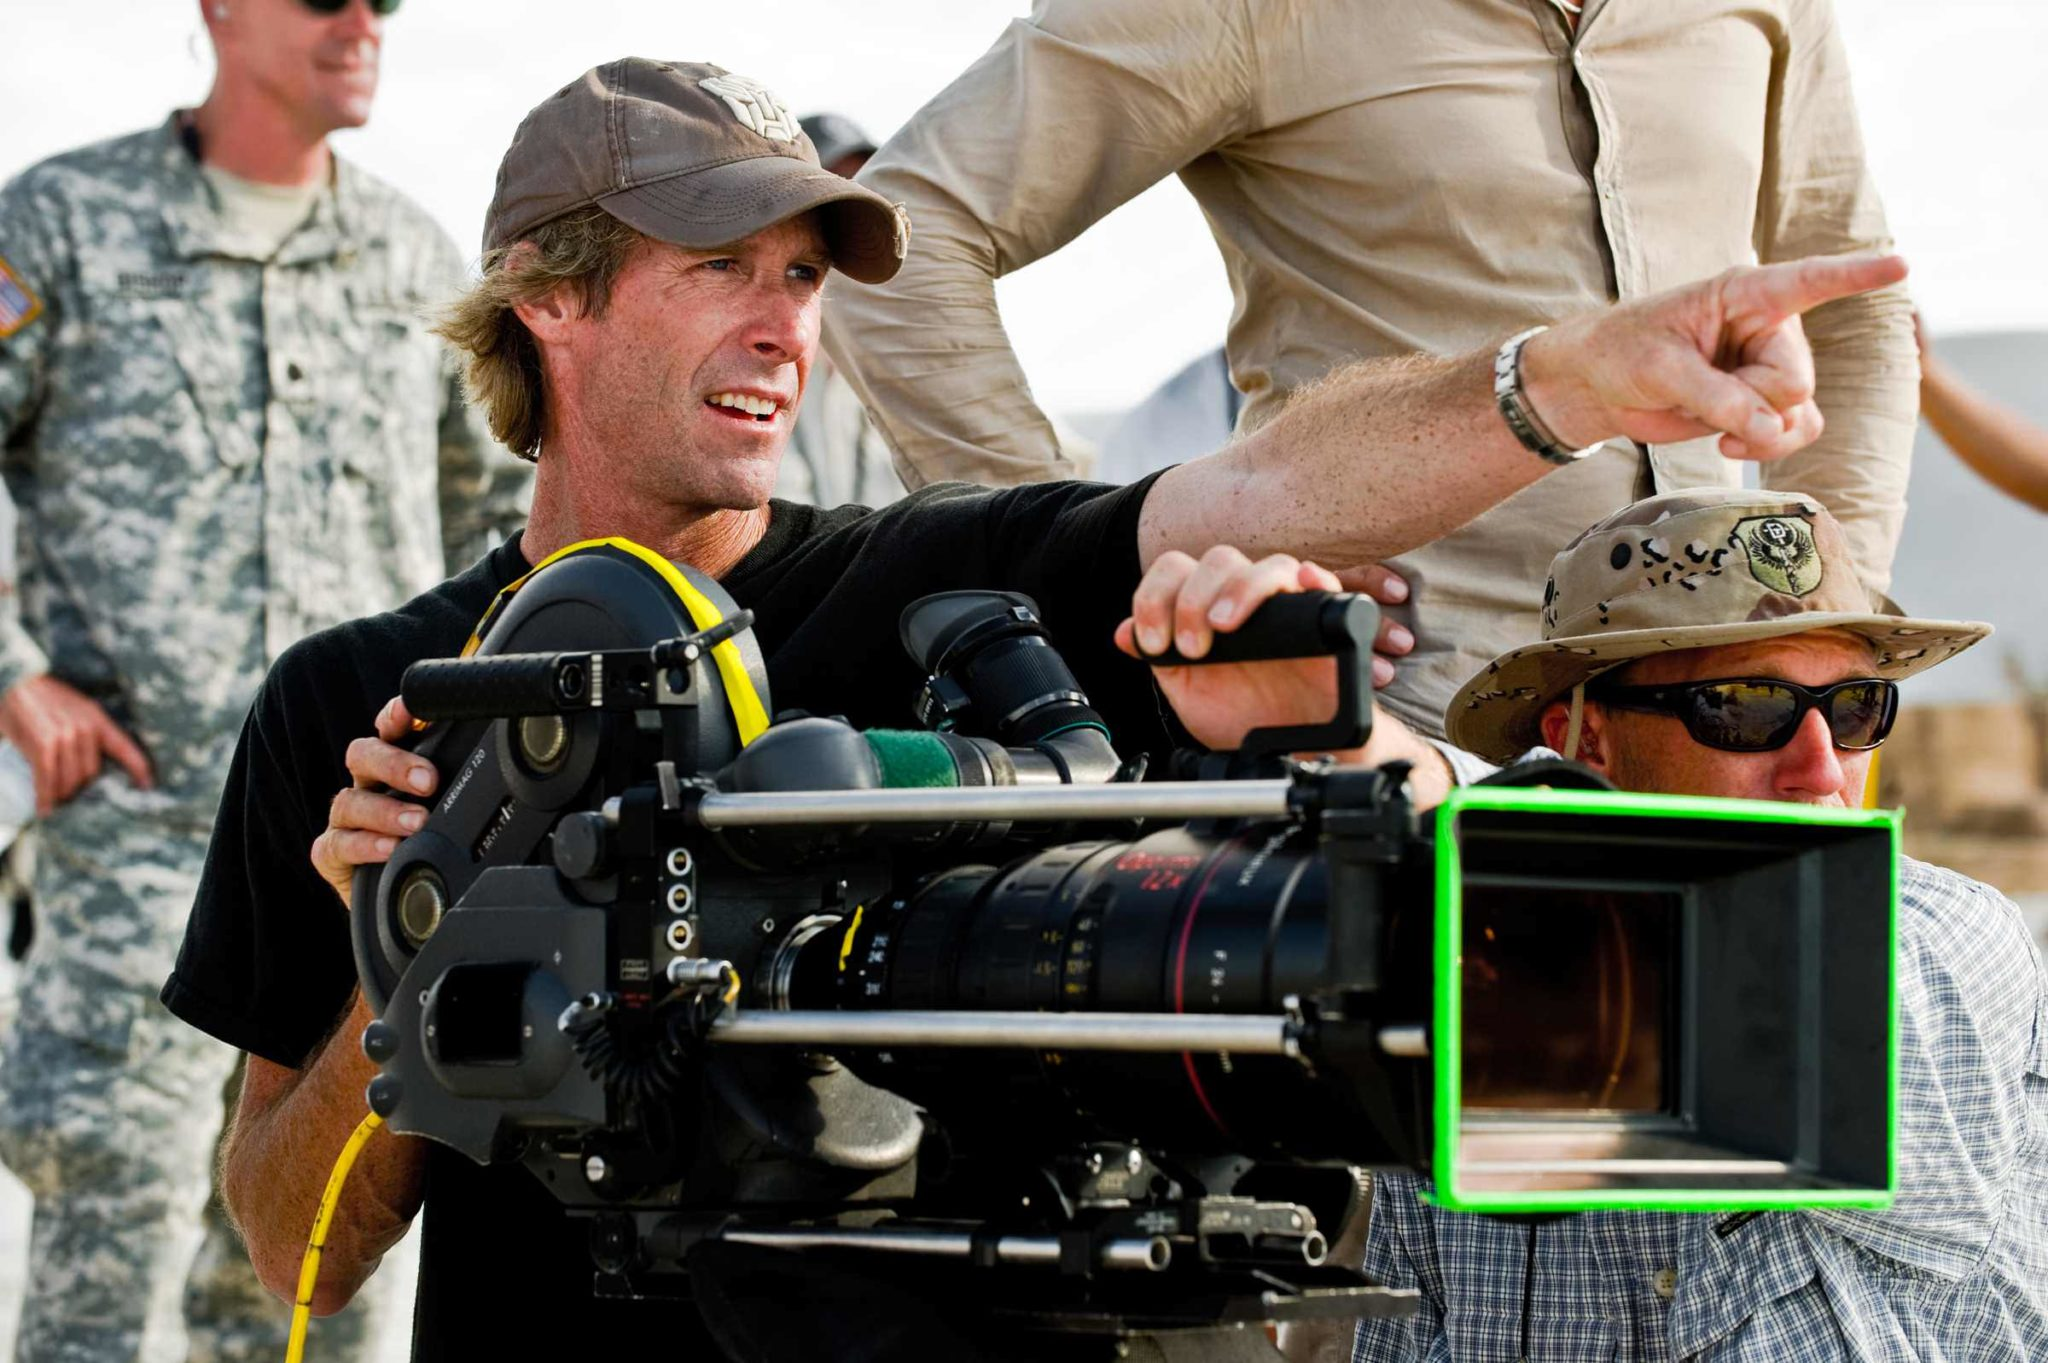 Imagen de Michael Bay, director nominado en reiteradas ocasiones a los Premios Razzie. Los Premios Razzie ha anunciado los nominados a los premios Razzie de 2014, entre los principales nominados están 'Transformers: Age of Extinction', 'A Million Ways to Die' y 'Teenage Mutant Ninja Turtles'. Los nominados a peor Director son: Seth McFarlane / A Million Ways to Die in the West Jonathan Liebesman / Teenage Mutant Ninja Turtles Renny Harlin / Legend of Hercules Michael Bay / Transformers: Age of Extinction Darren Doane / Saving Christmas